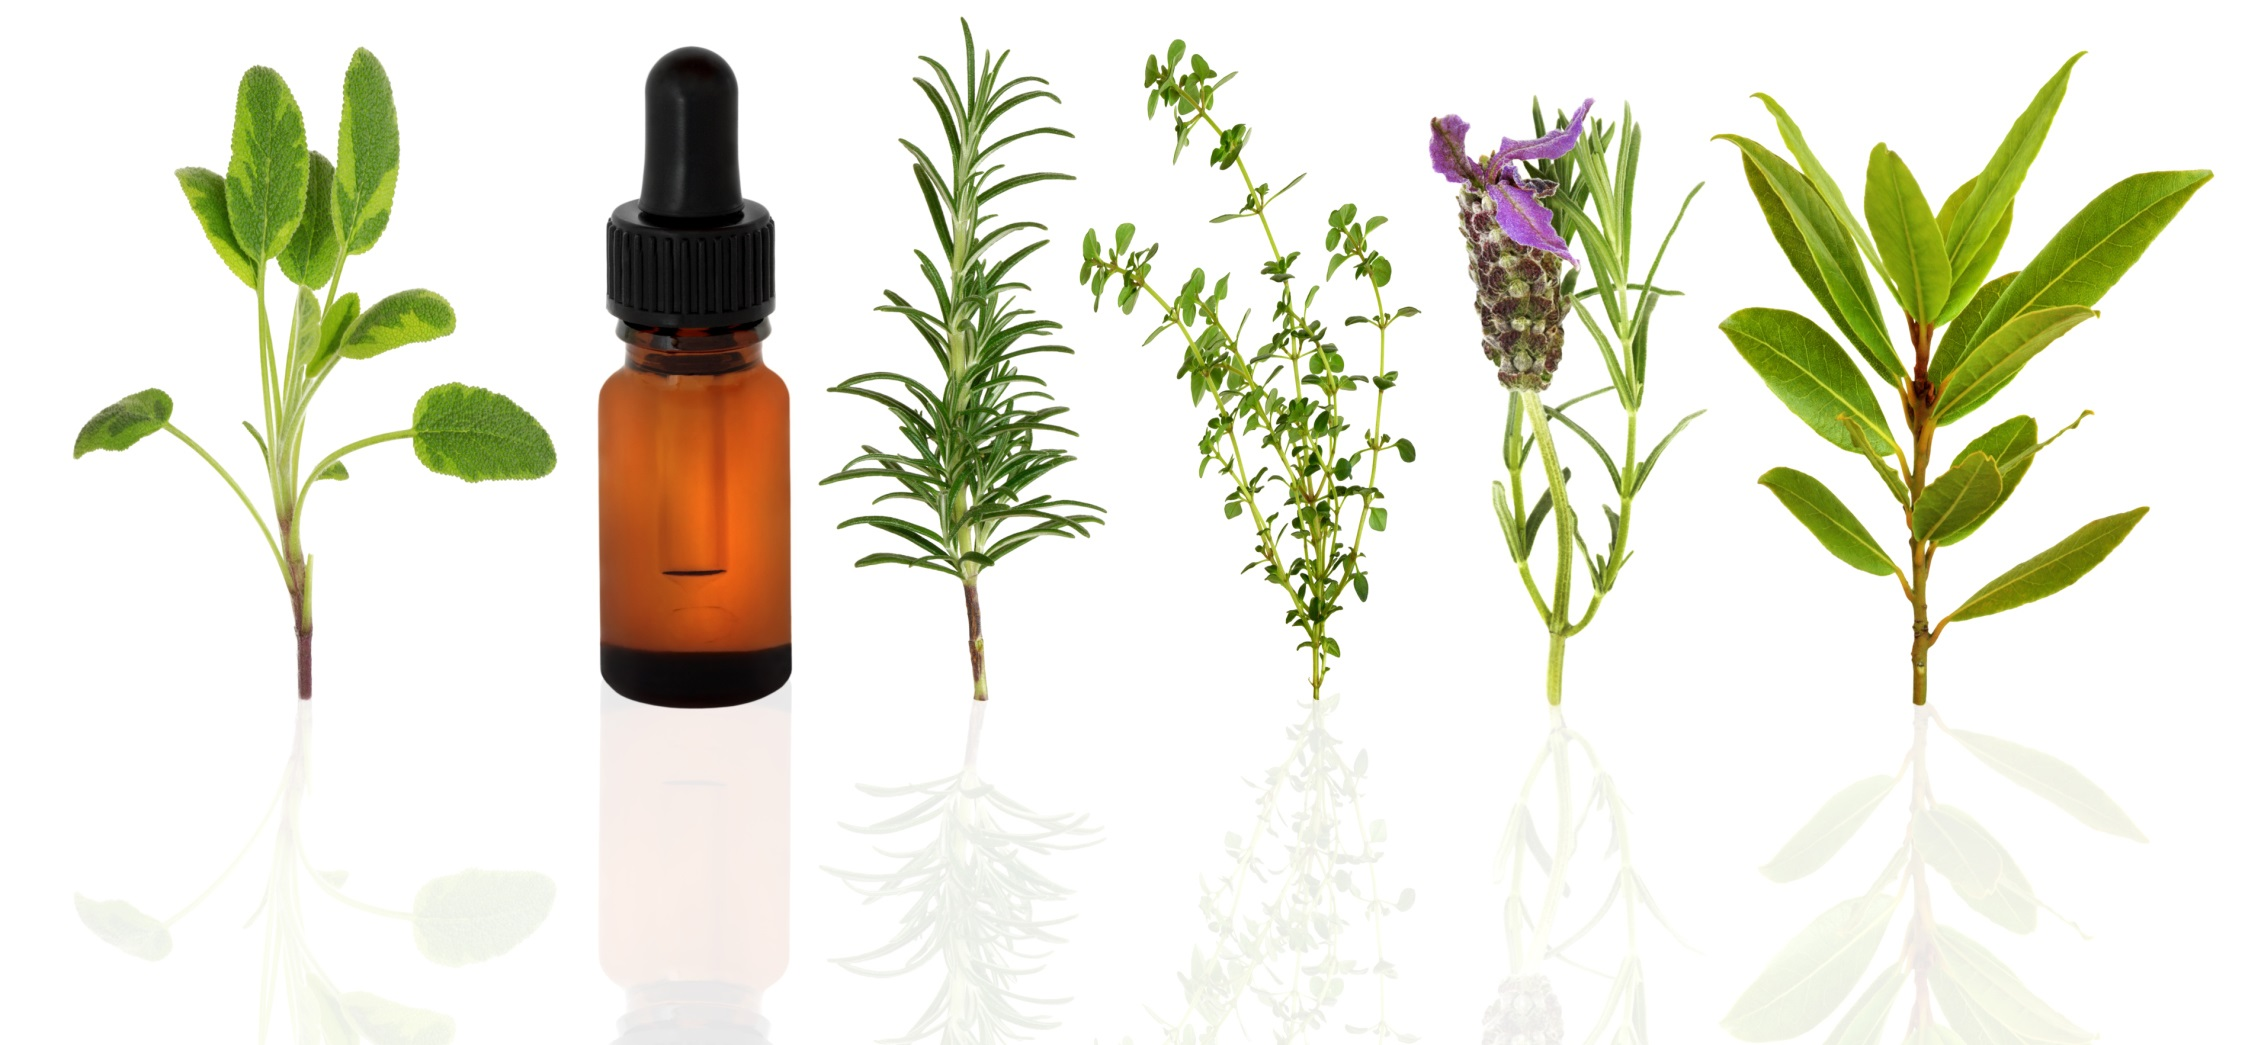 Indo World-Herbs Suppliers, herbal oils Exporters, Botanical